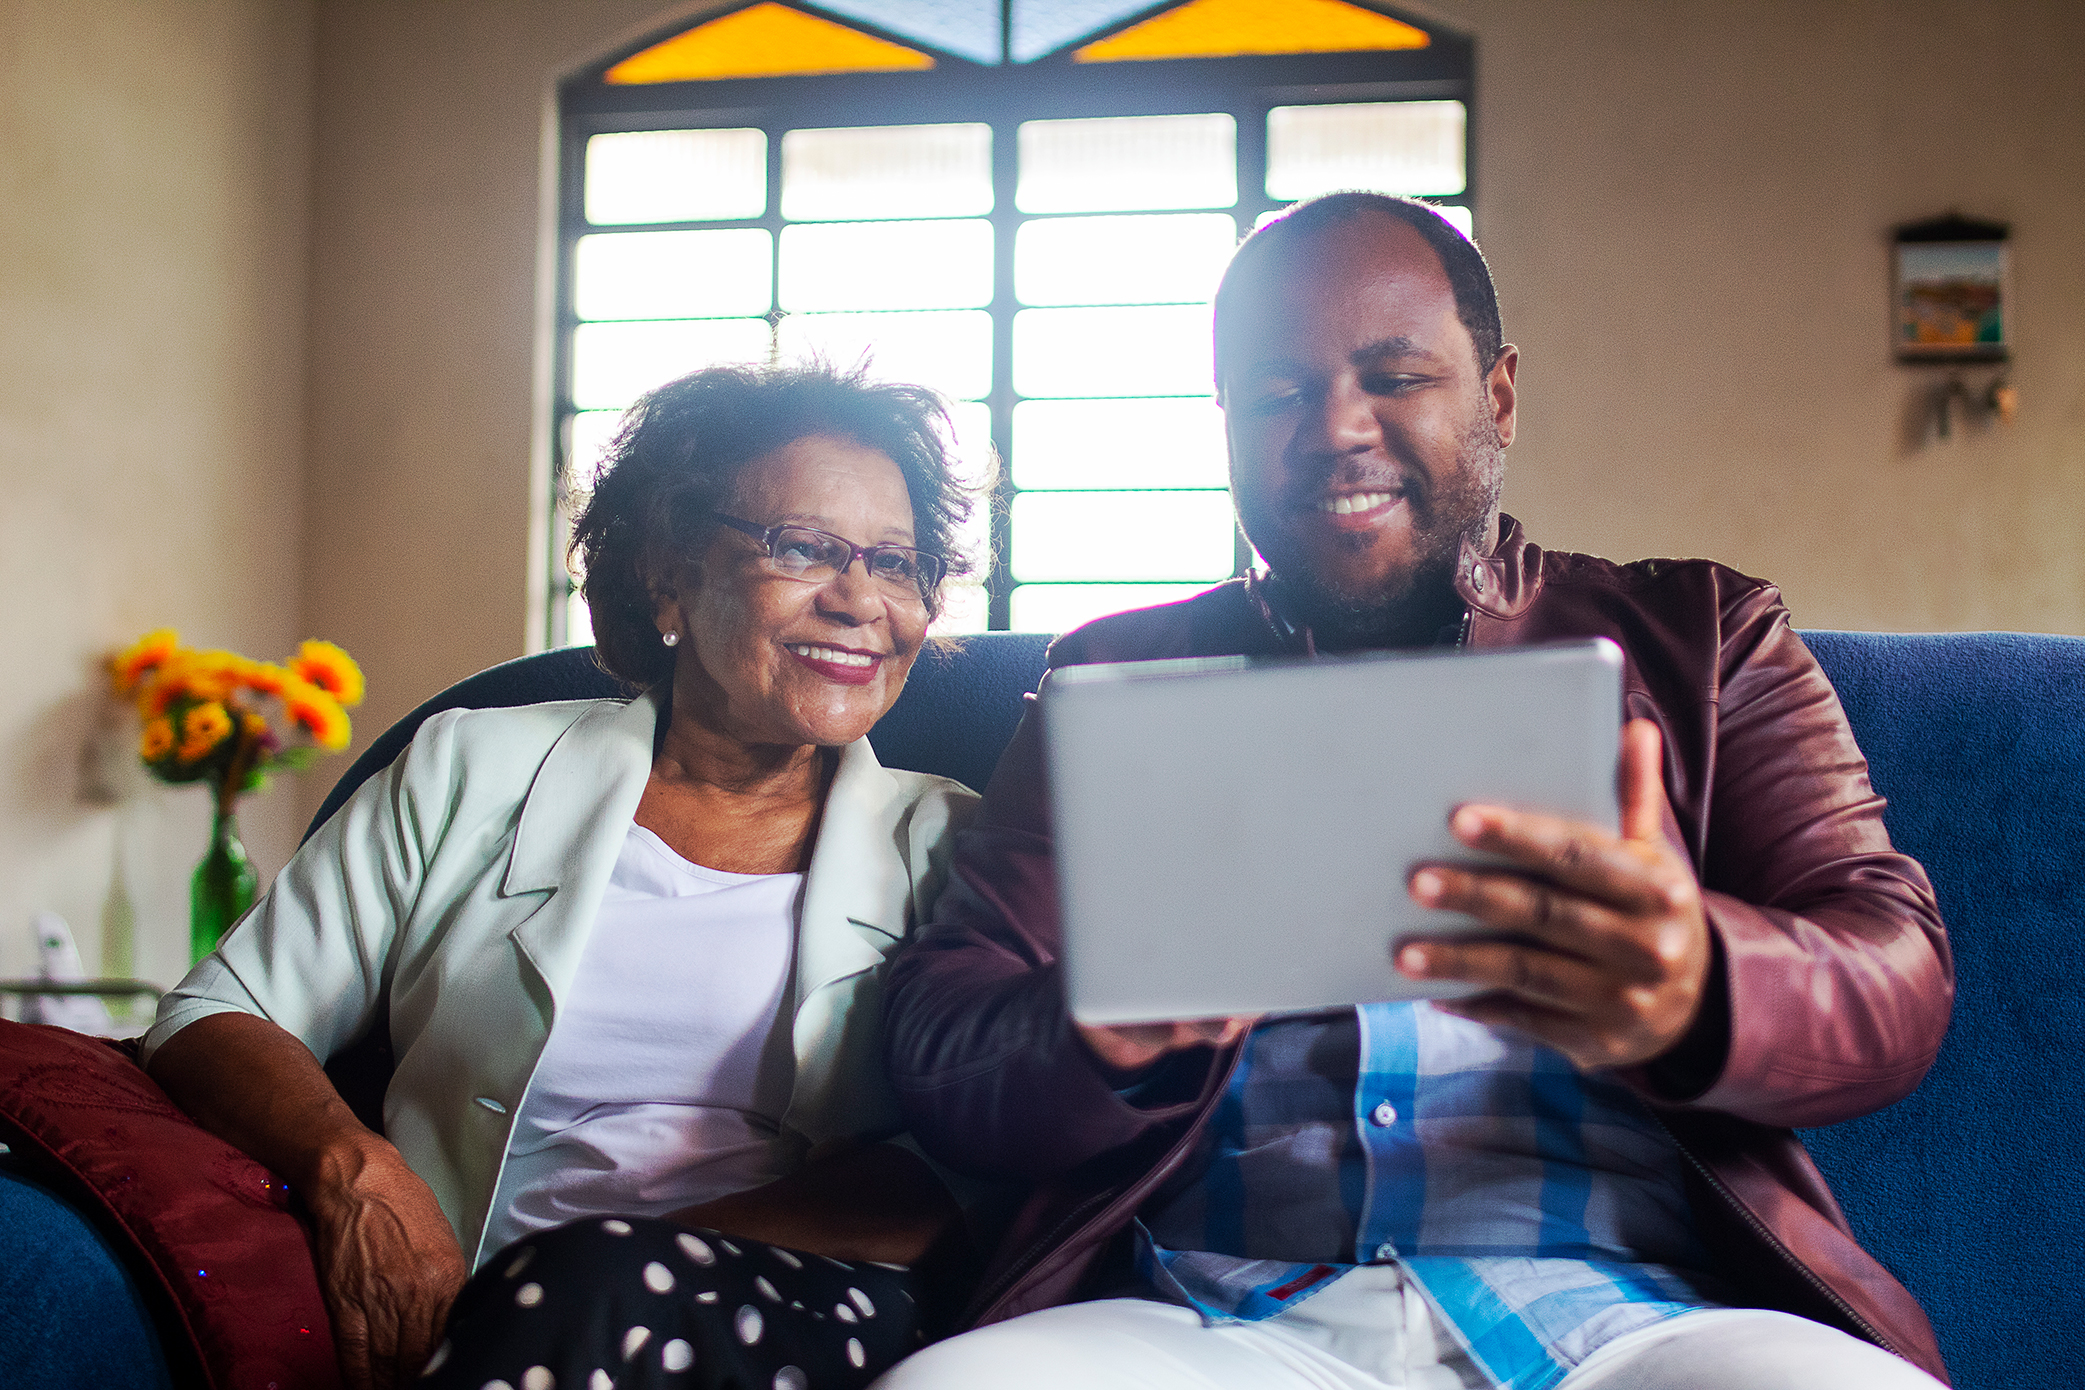 Woman and man looking at a tablet,smiling